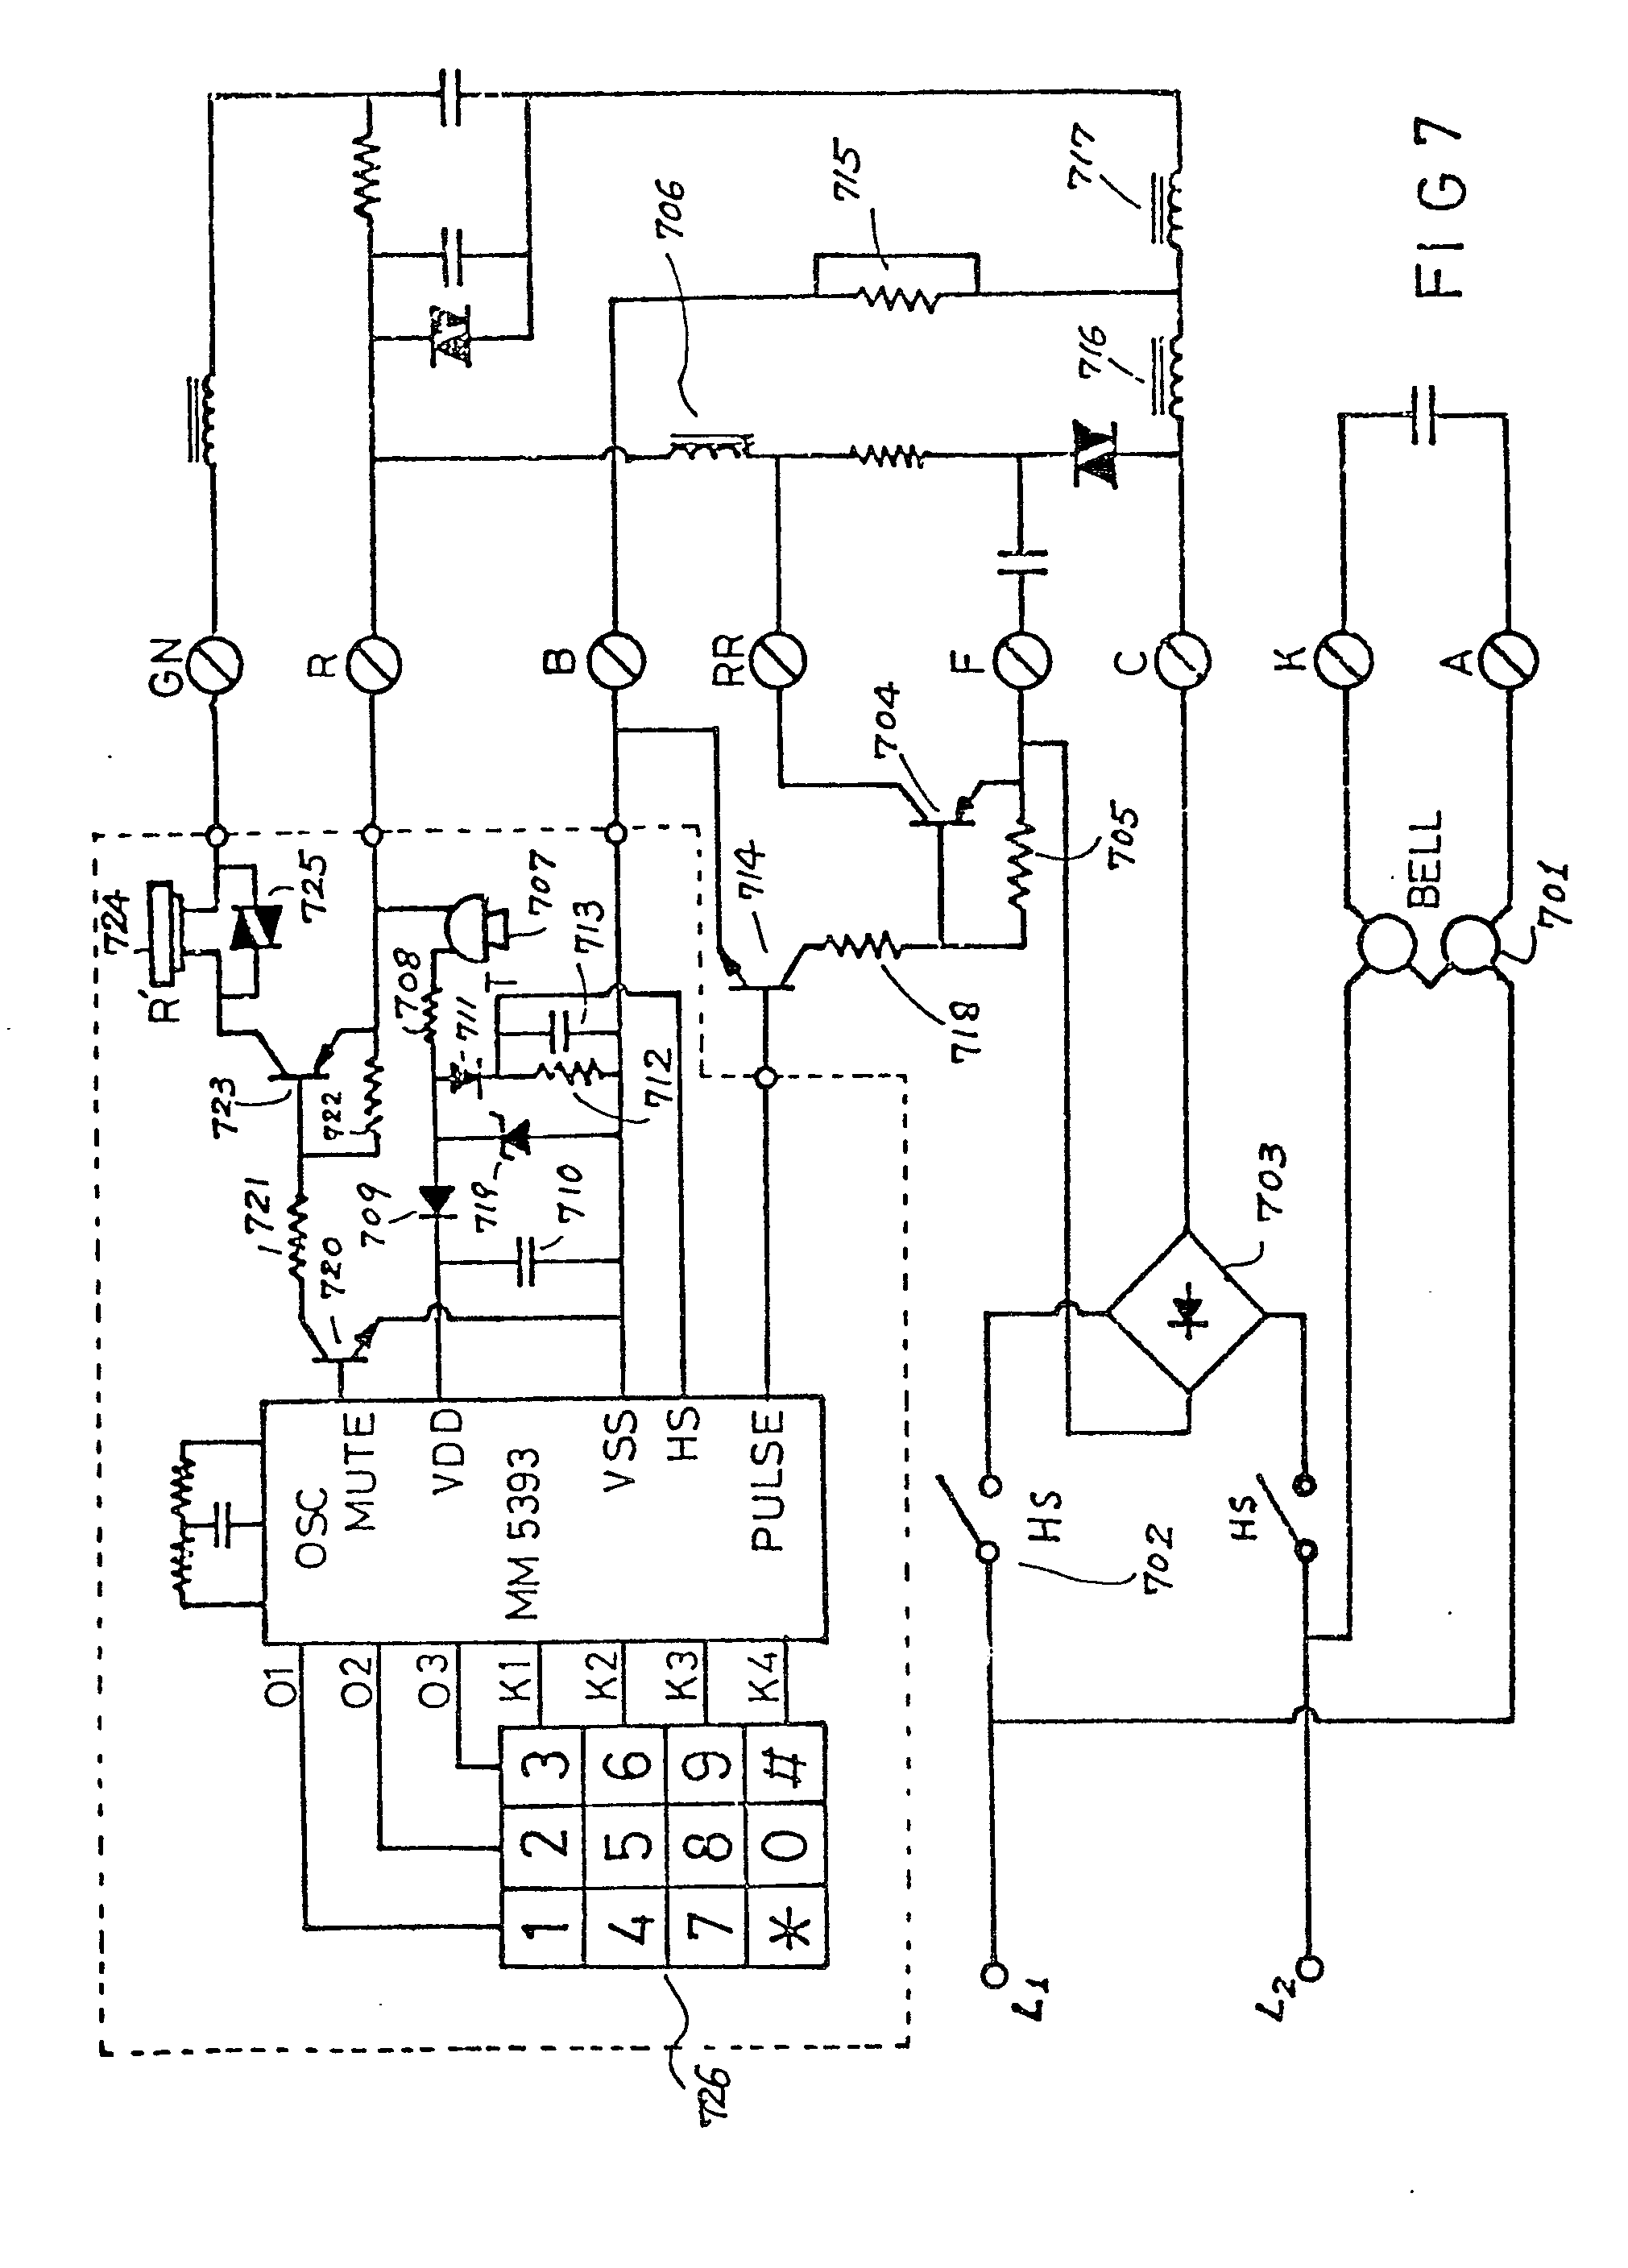 Interface Circuits For Touch Pulse Telephones Patent 0027302 Battery Charger Circuit Powersupplycircuit Diagram